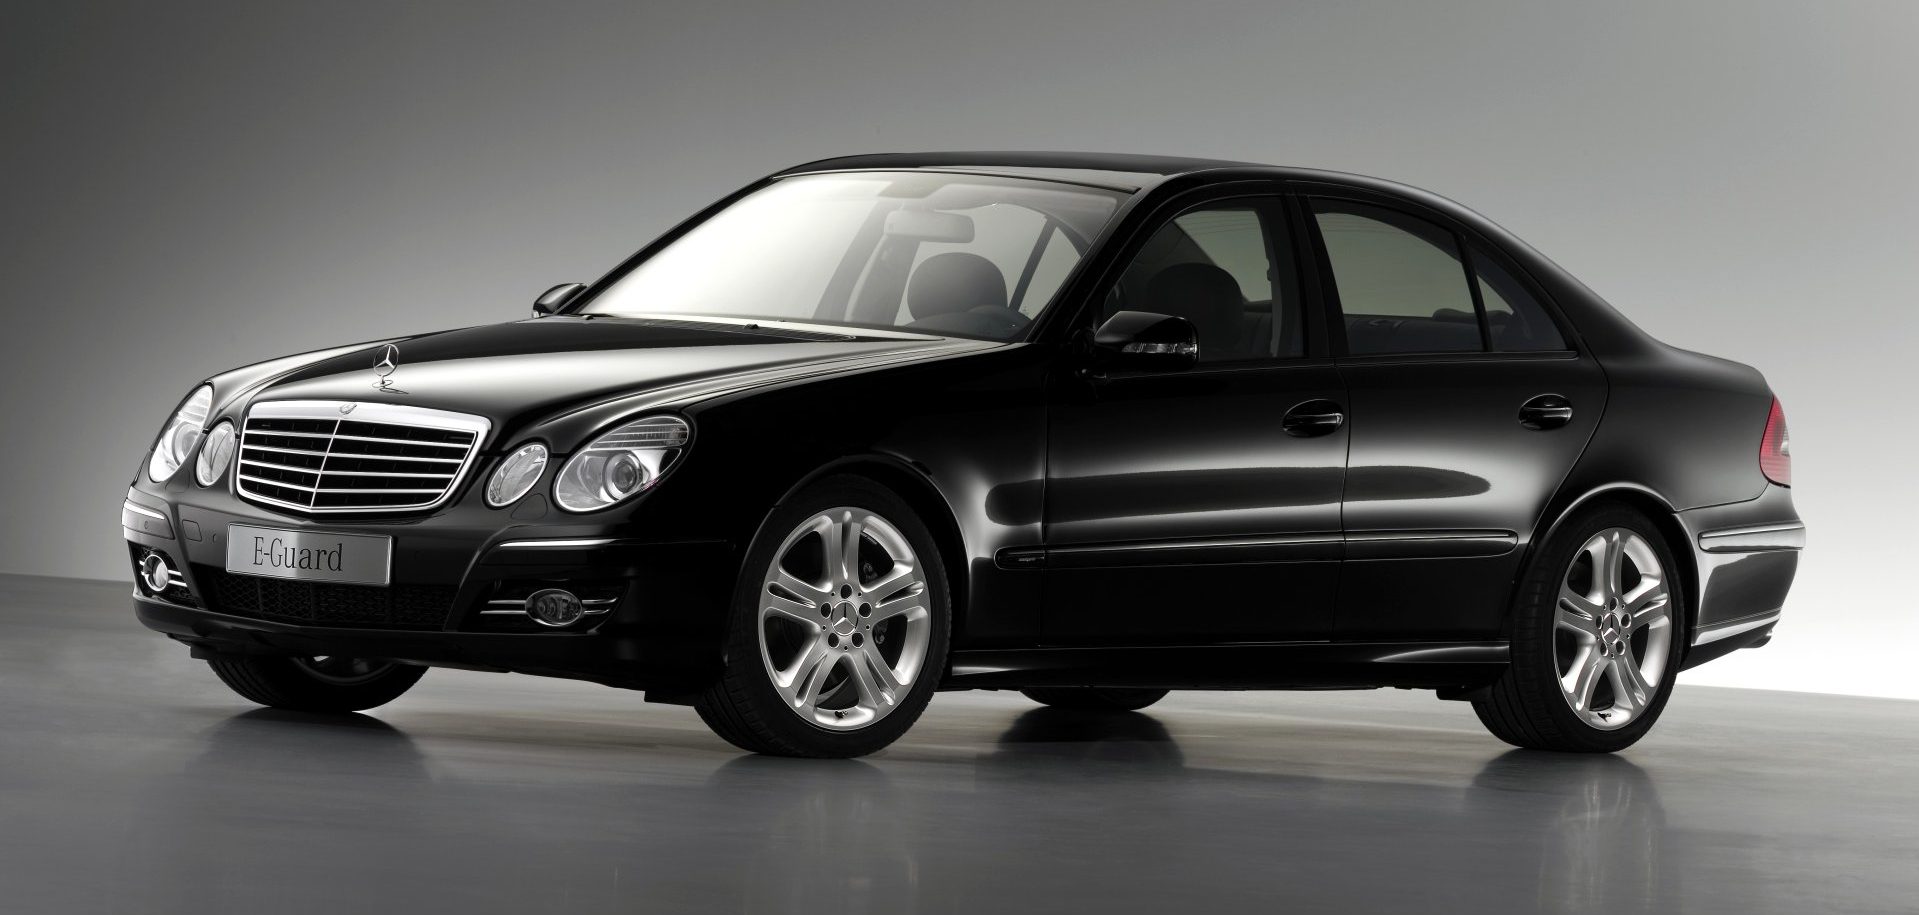 The cullen cars images bella 39 s mercedes benz s600 before for Mercedes benz cars images